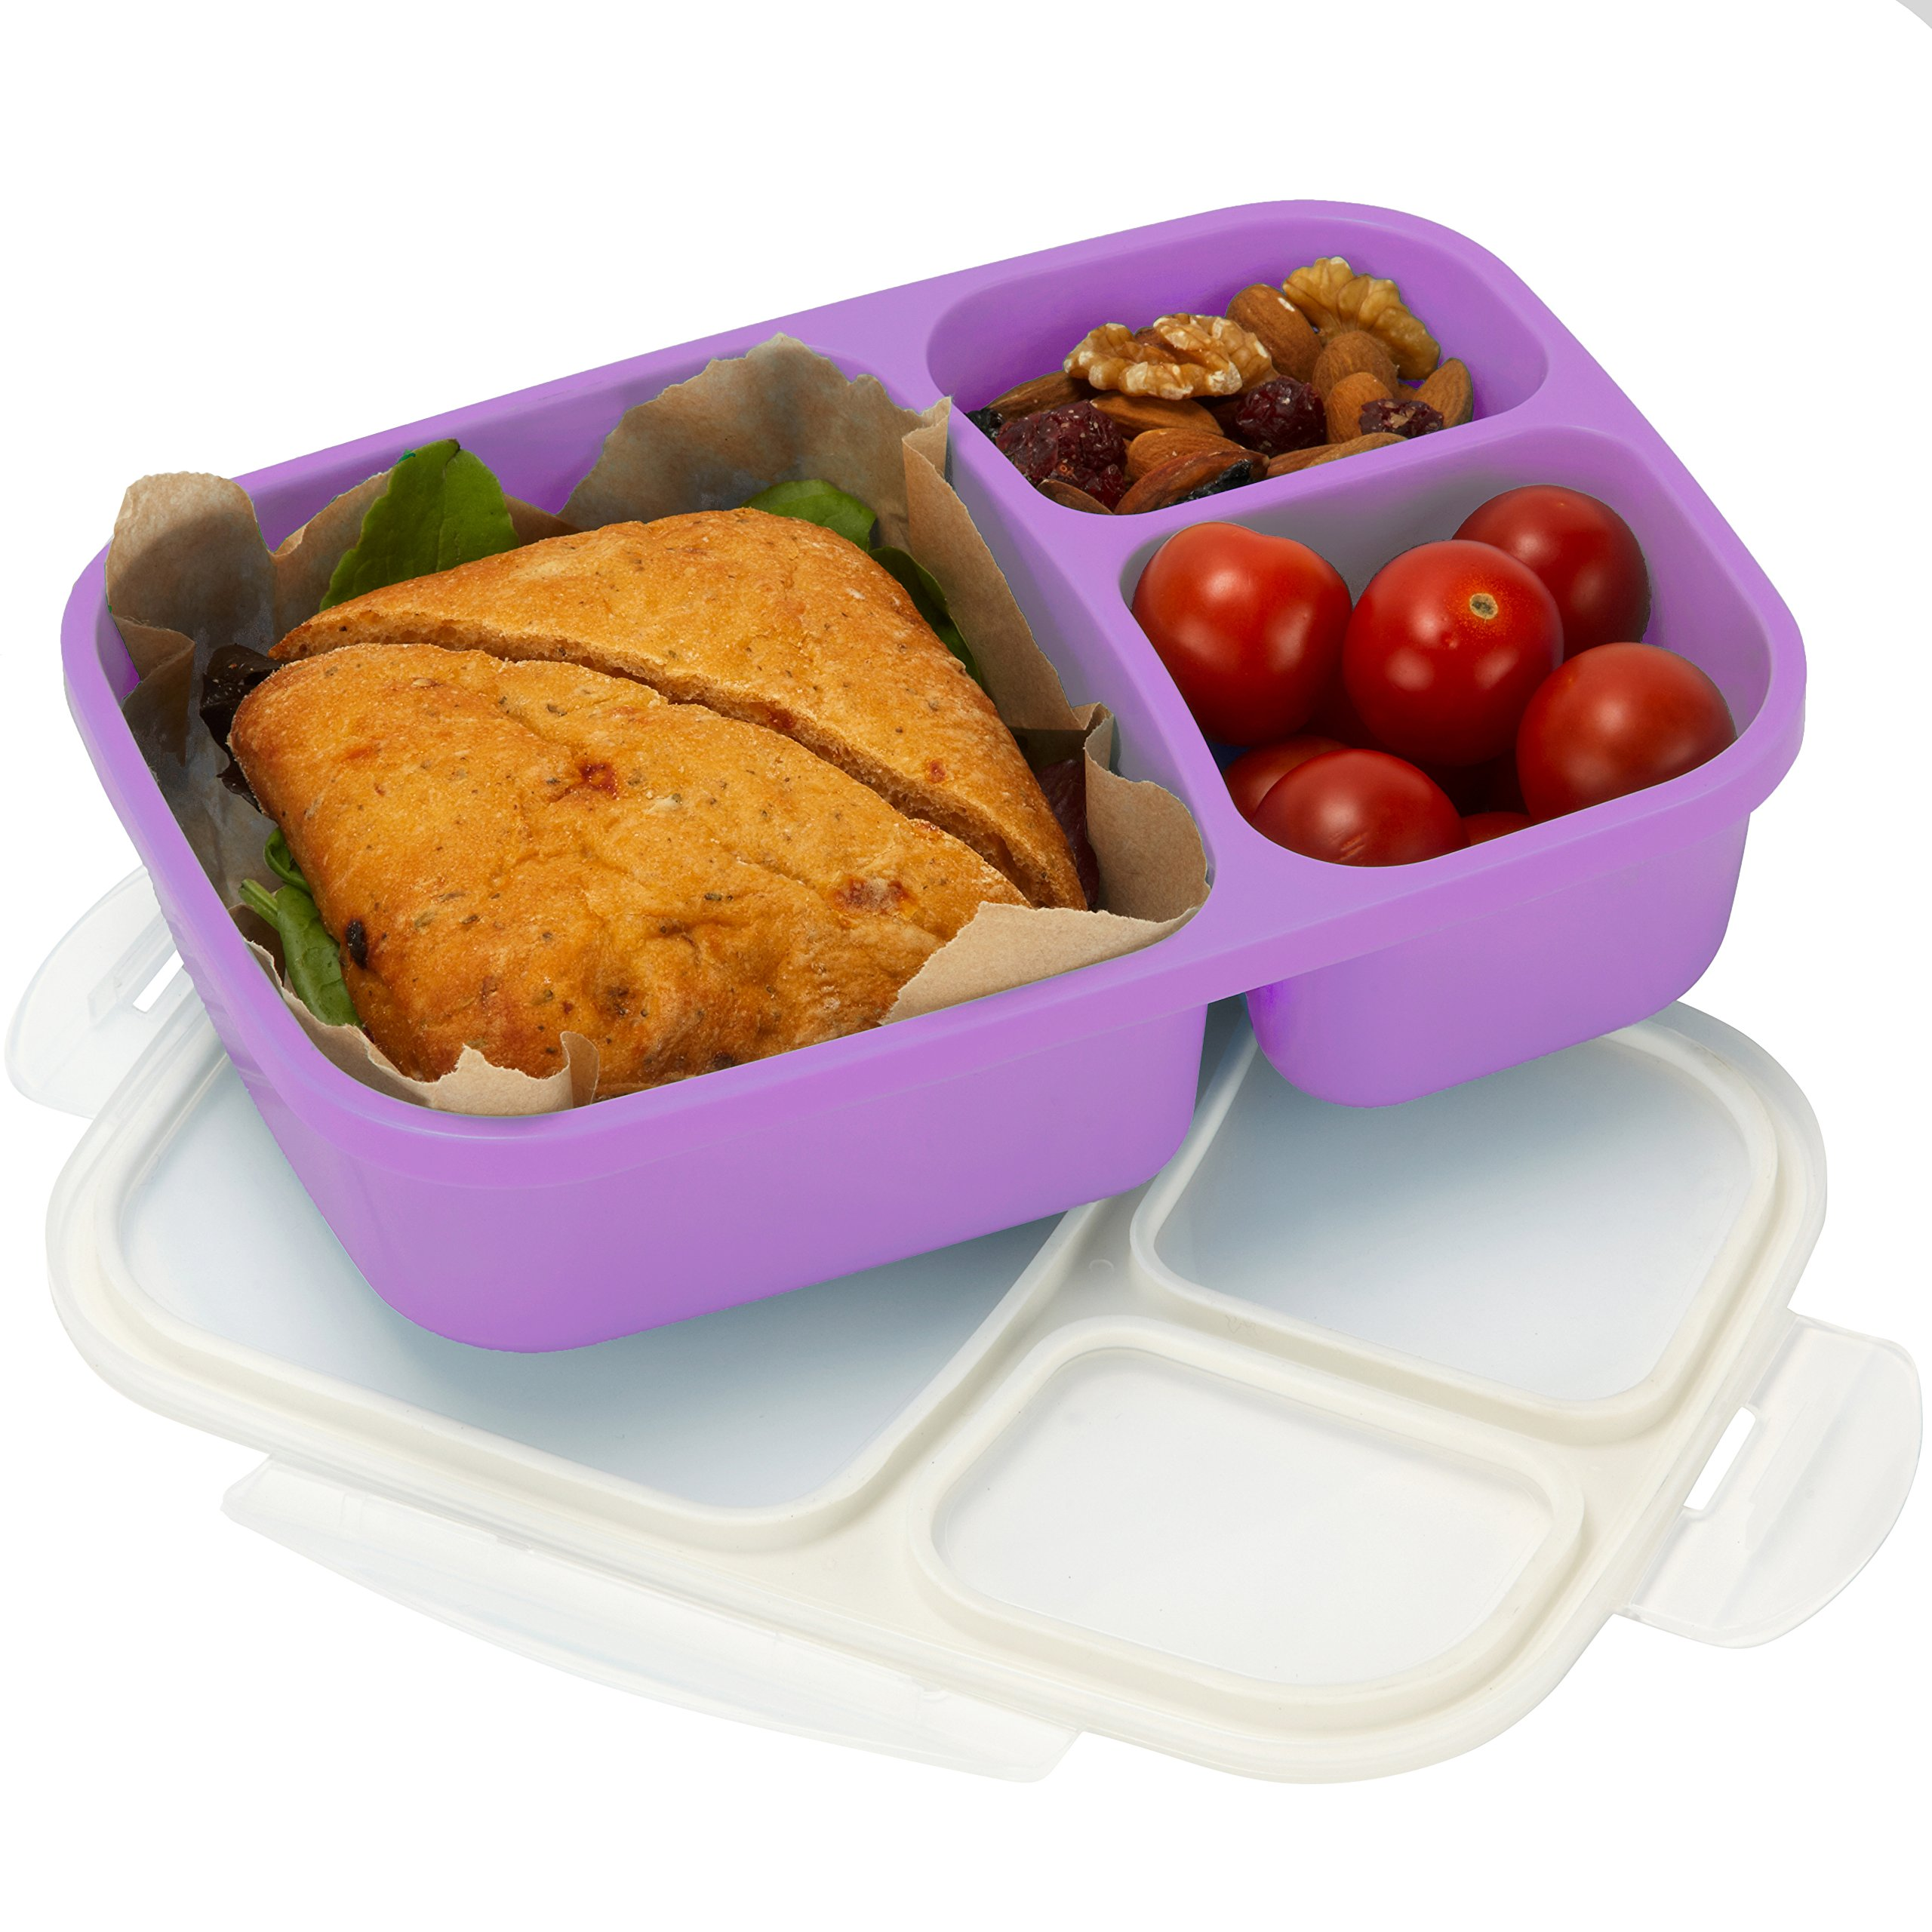 Leakproof, 3 Compartment, Bento Lunch Box, Airtight Food Storage Container - Purple